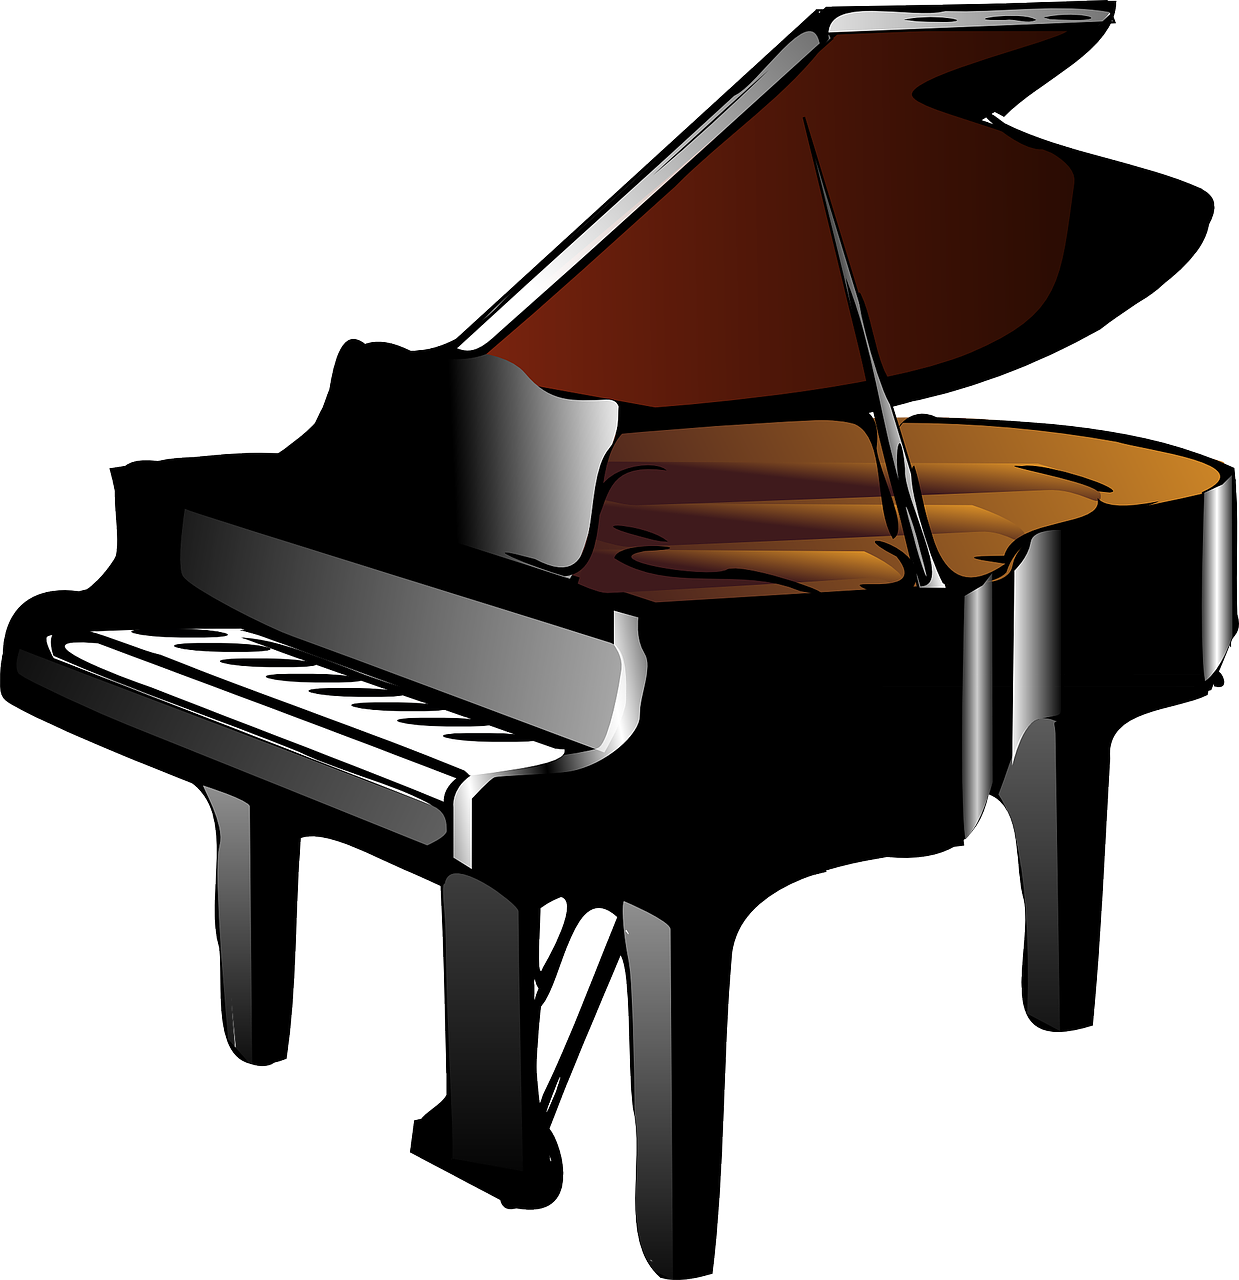 Piano Grand Baby Free Vector Graphic On Pixabay